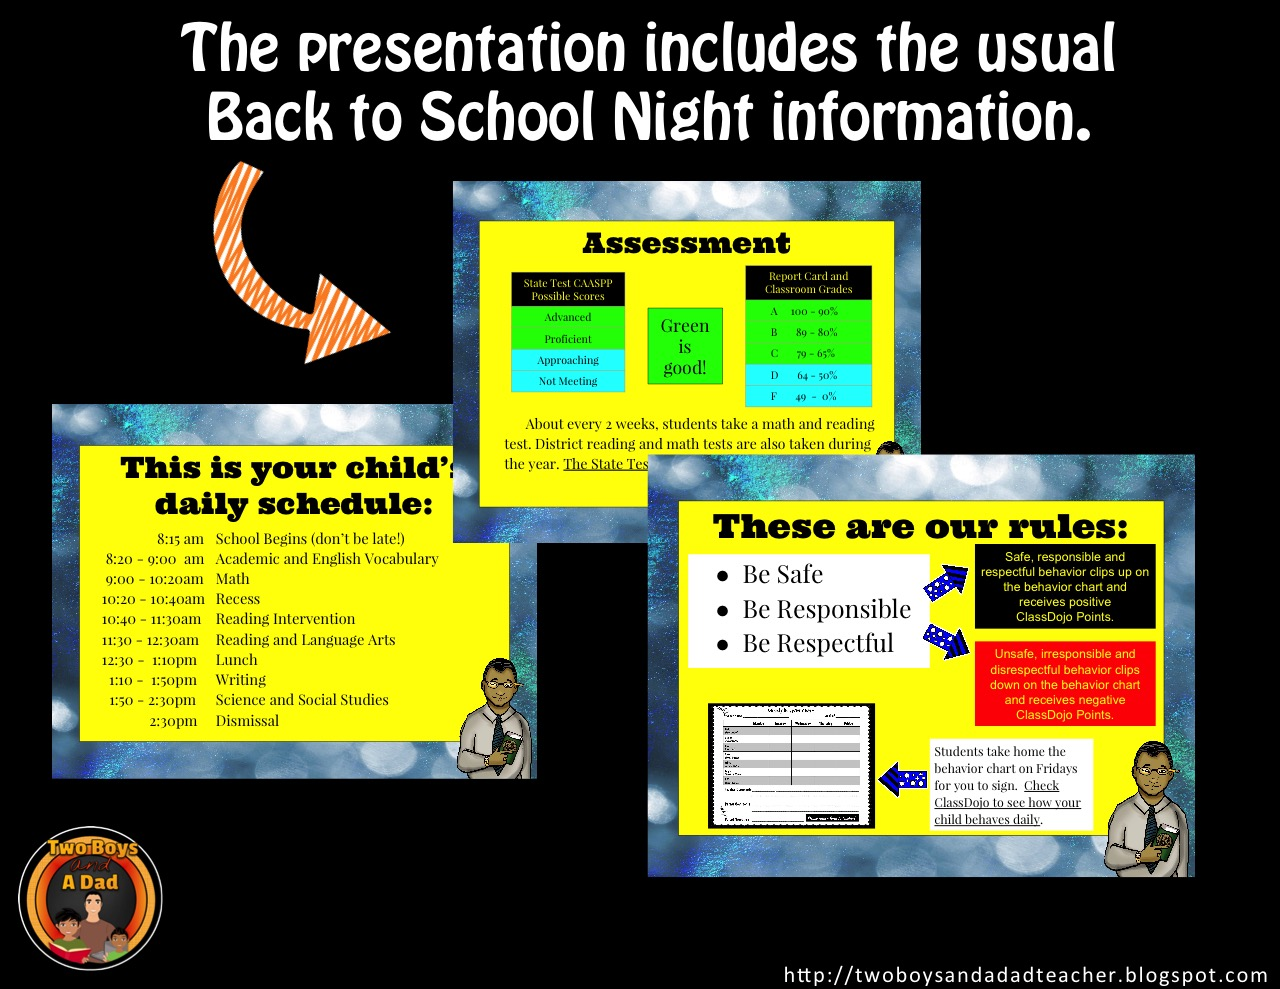 Back to school powerpoint template image collections templates powerpoint templates for back to school night choice image free school powerpoint templates images templates example toneelgroepblik Images